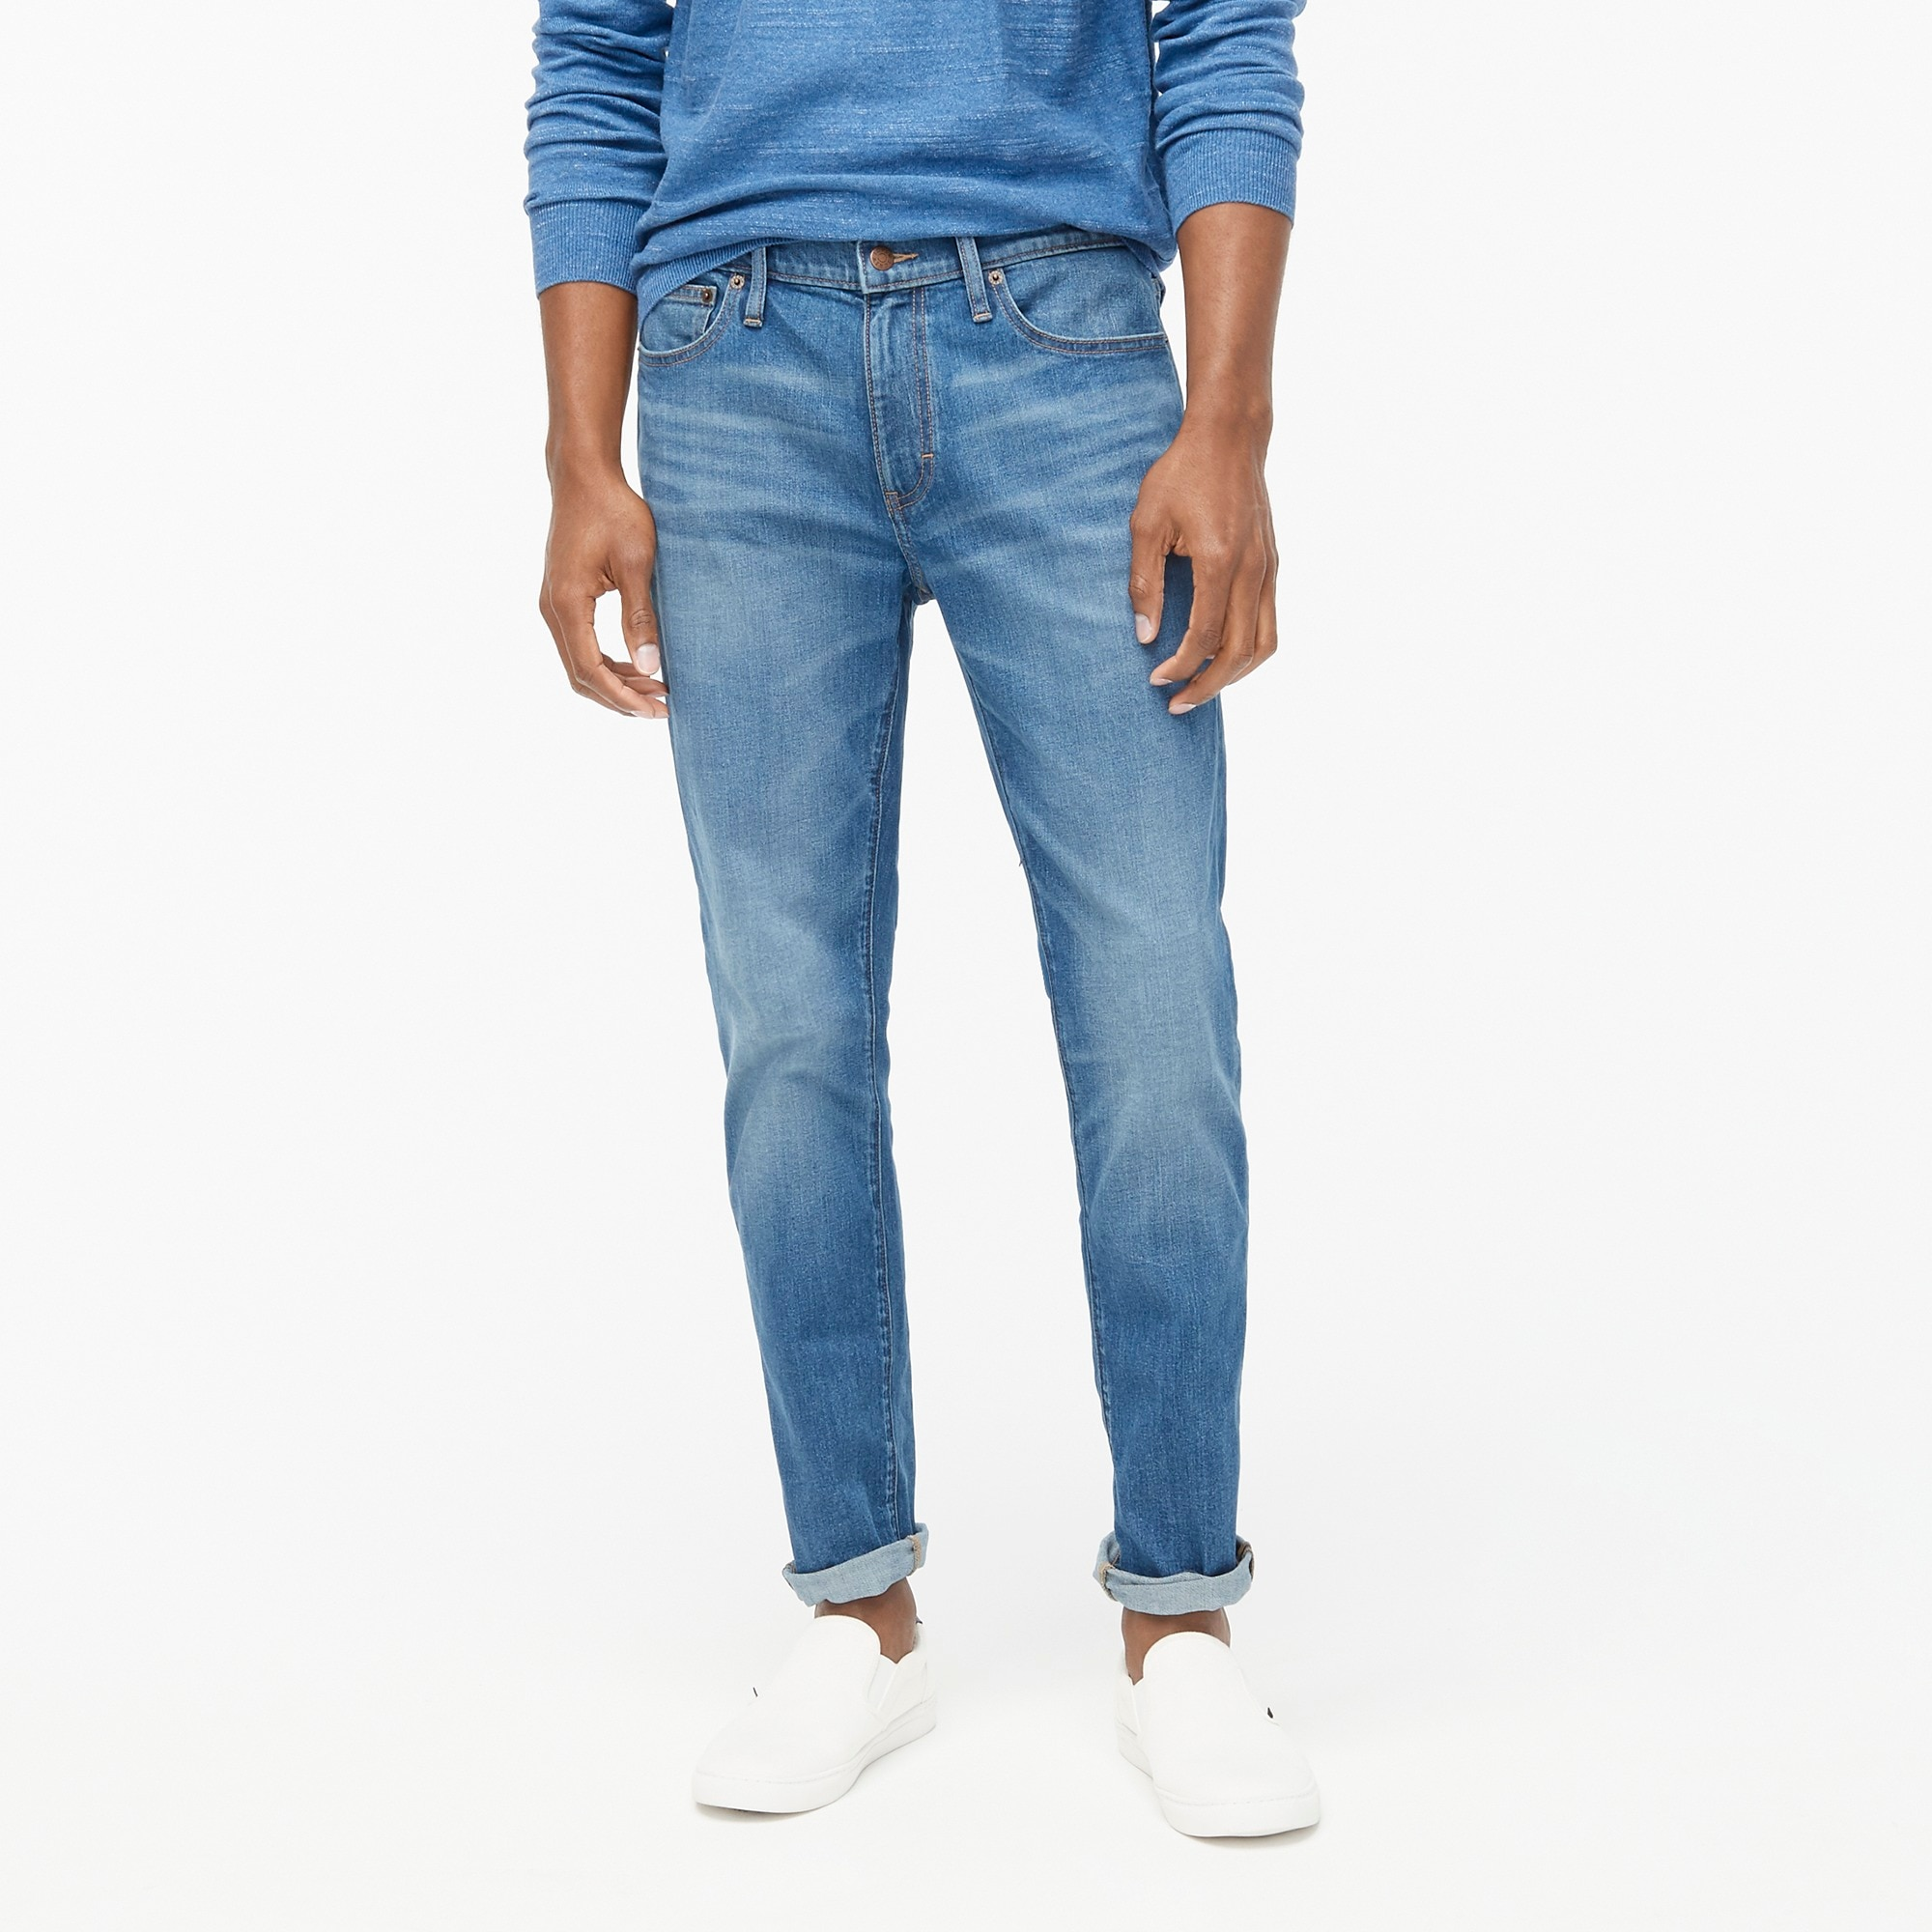 Image 1 for Slim-fit flex jean in medium wash